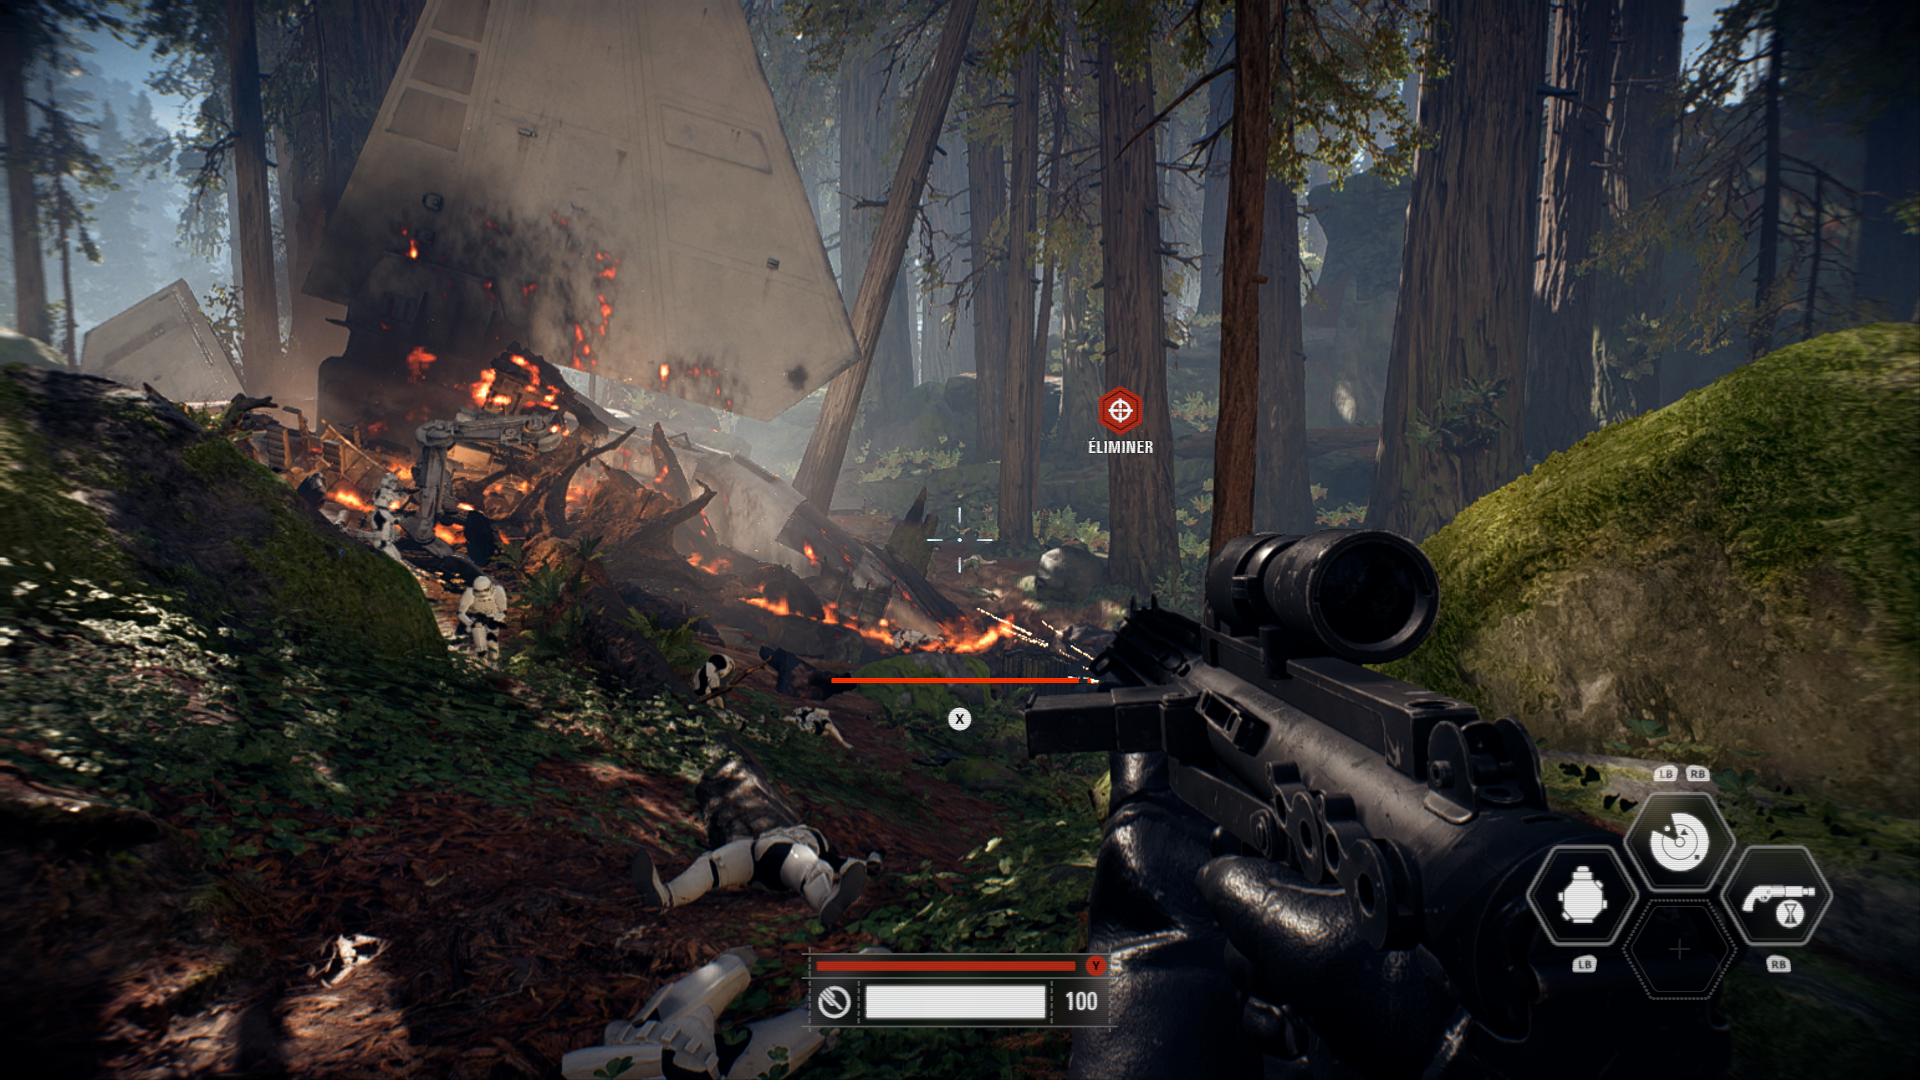 test solo star wars battlefront 2 blog geeketc